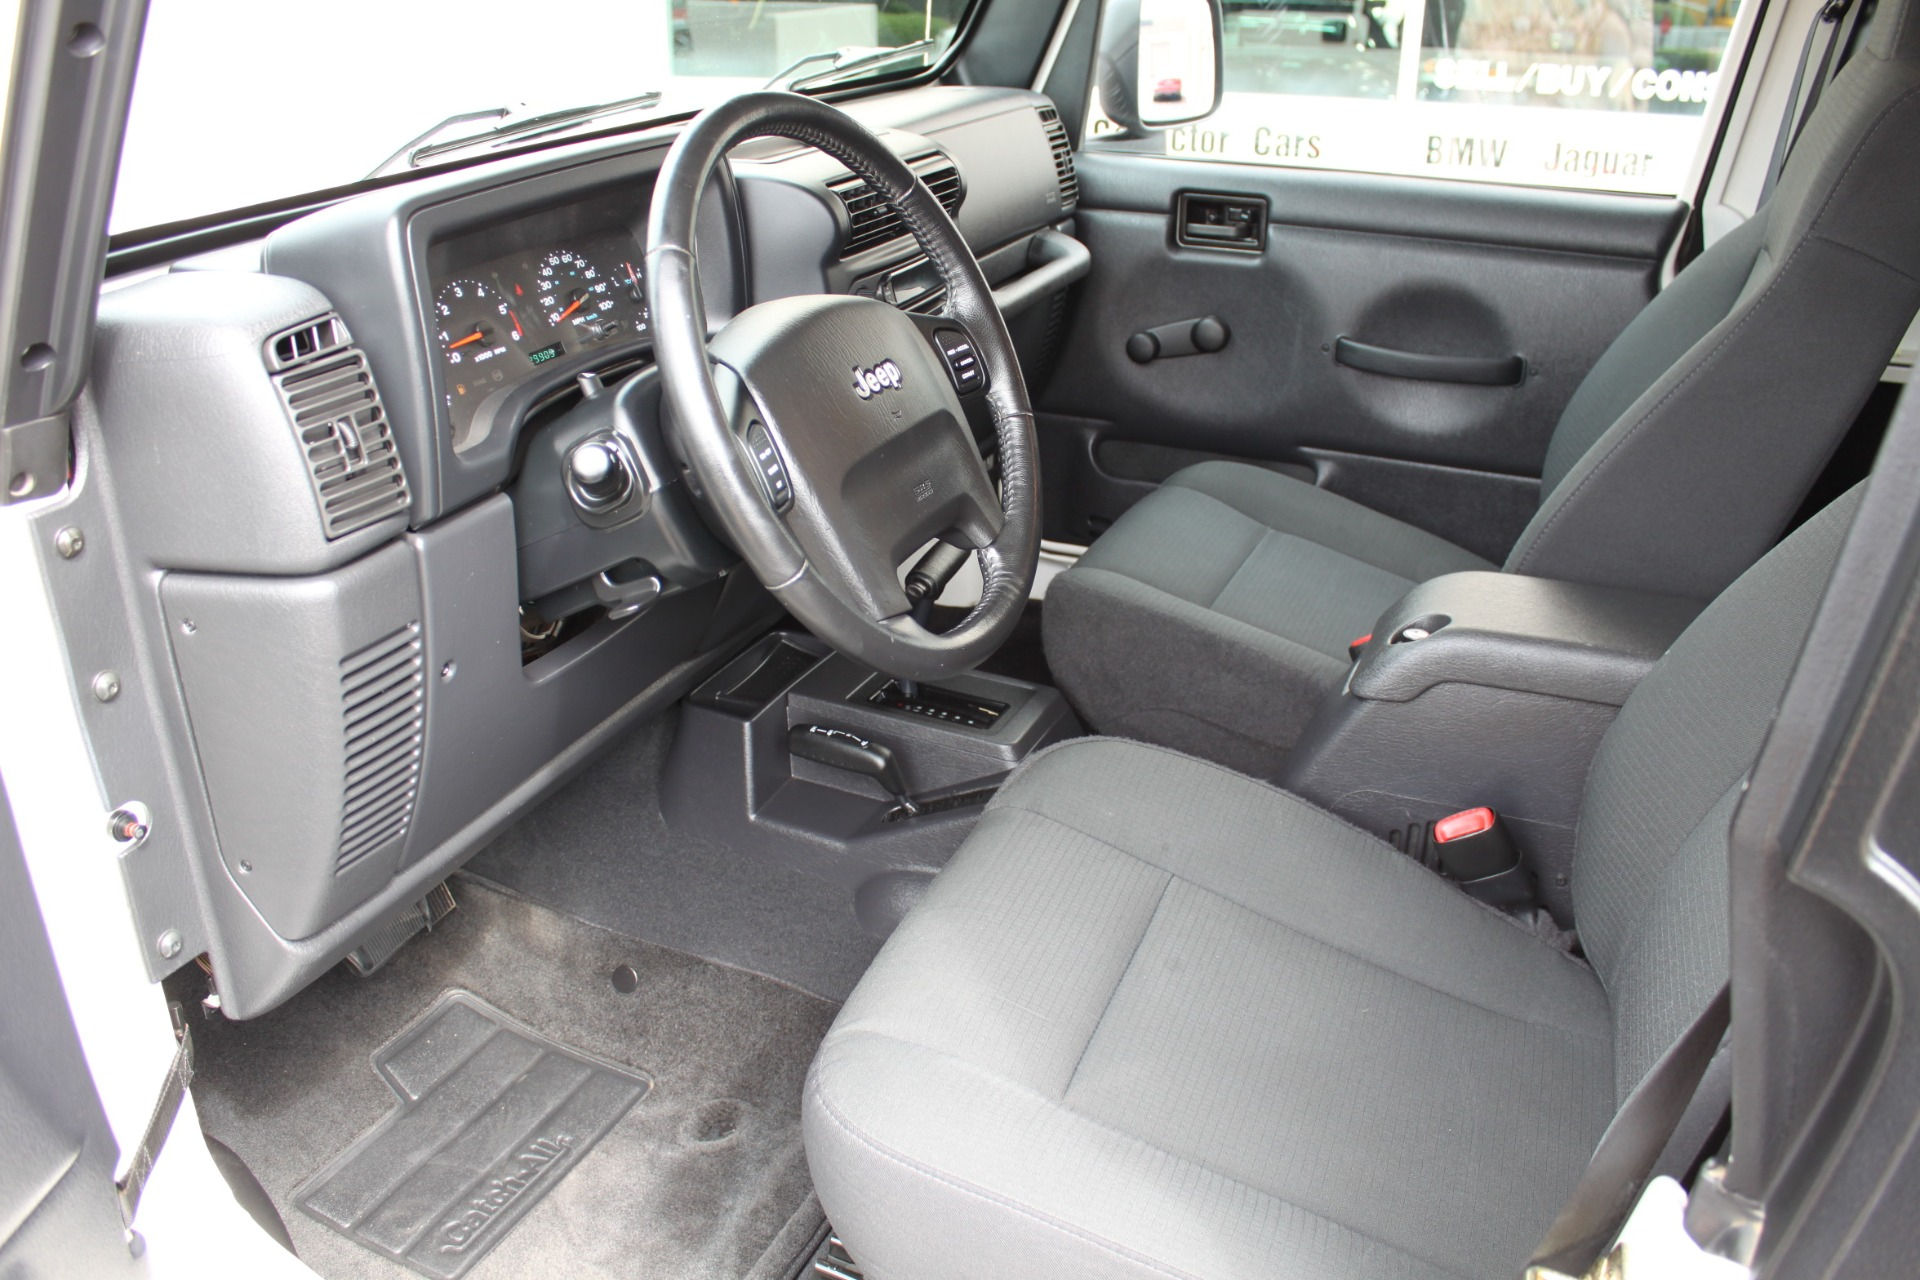 Used-2006-Jeep-Wrangler-Unlimited-Rubicon-LWB-Collector